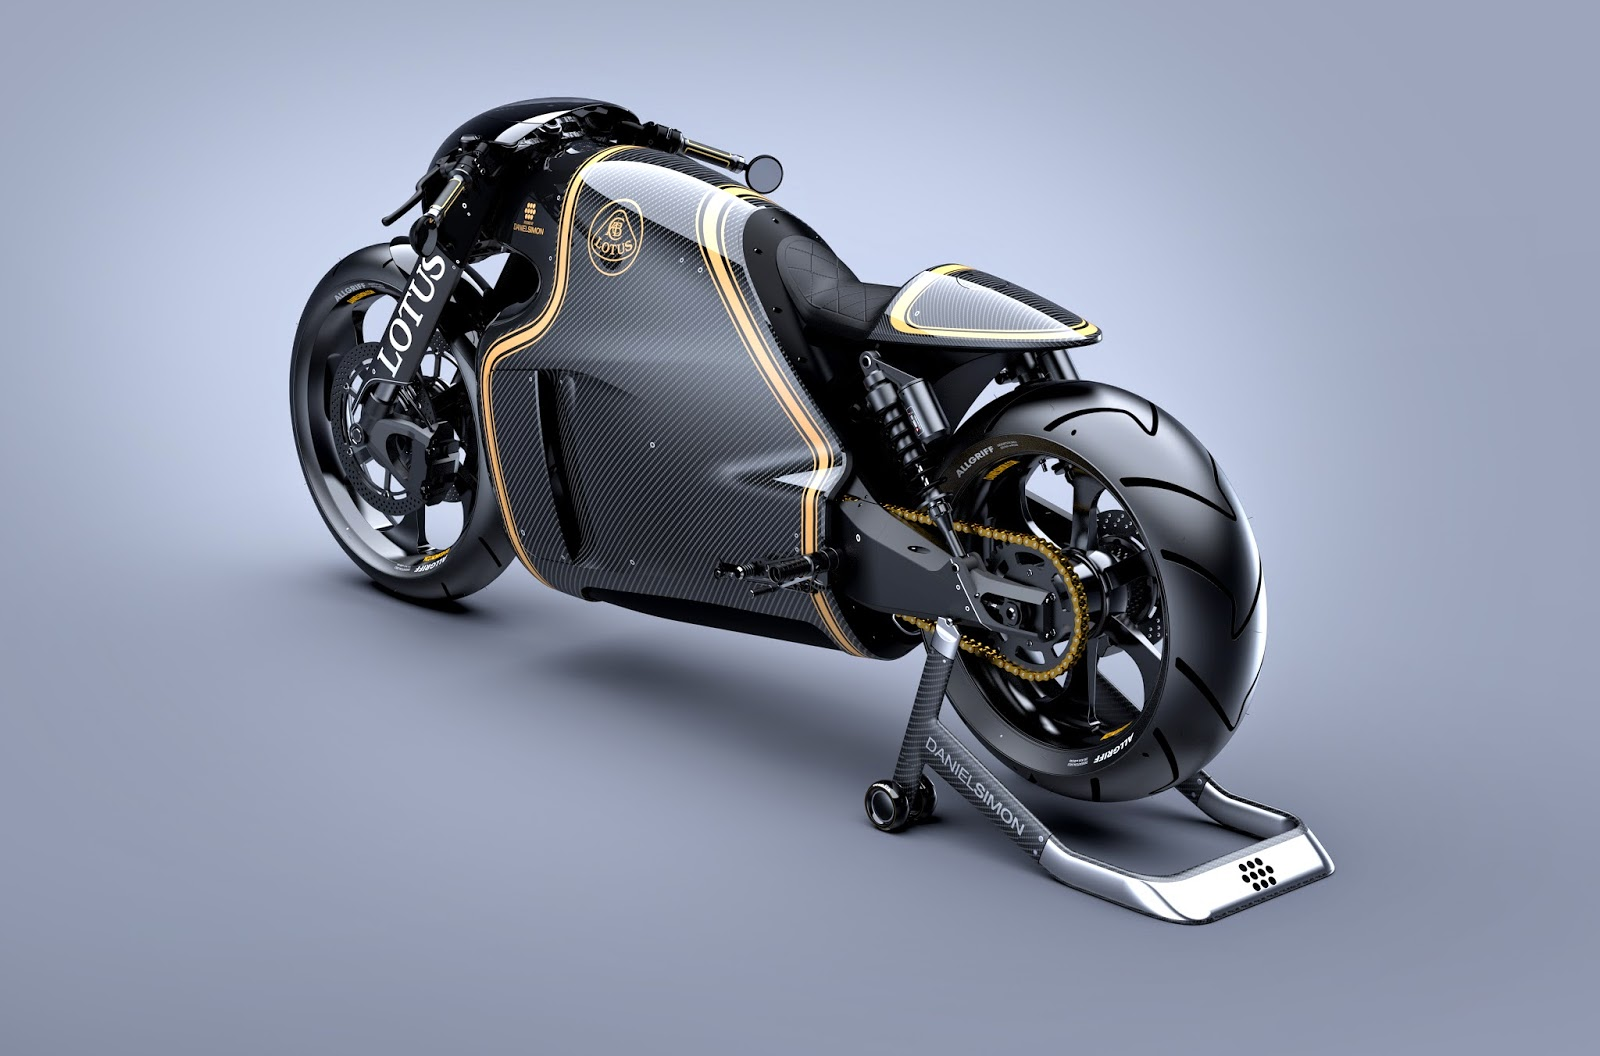 Lotus Motorcycle unveils the C-01: Buy Just for $130,000 Photo